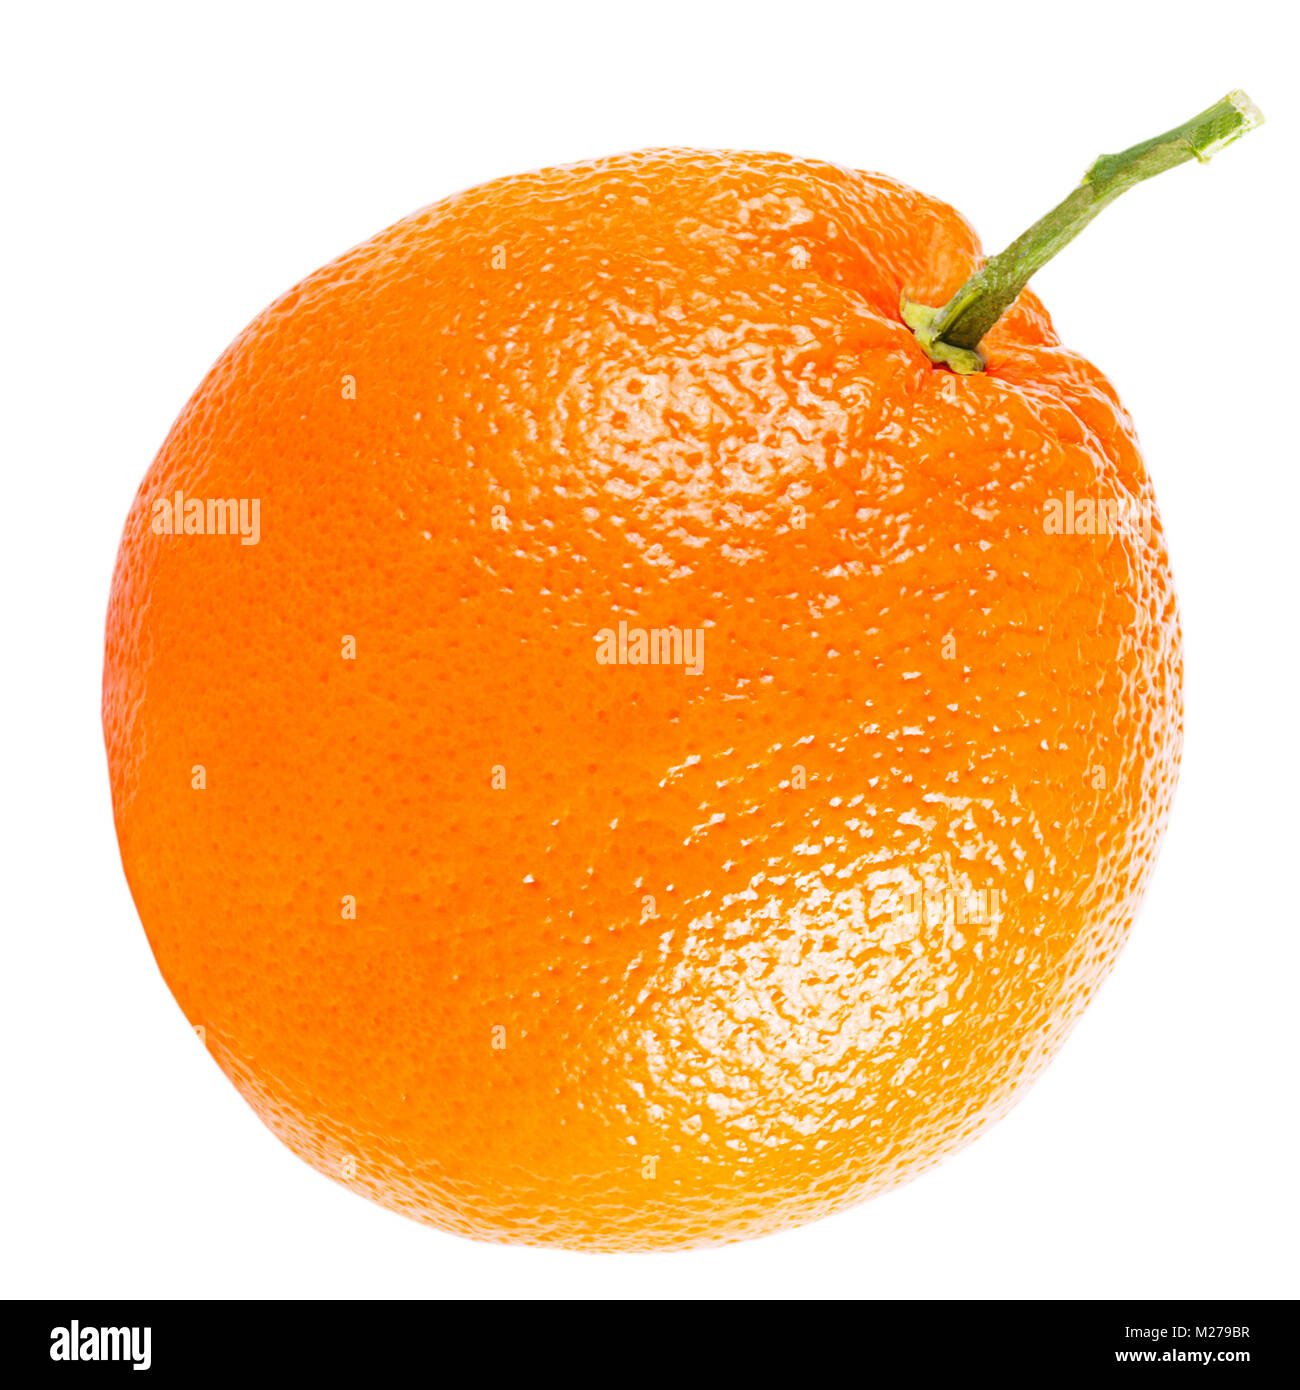 Isolated oranges on white background with clipping path as packaging design element. - Stock Image